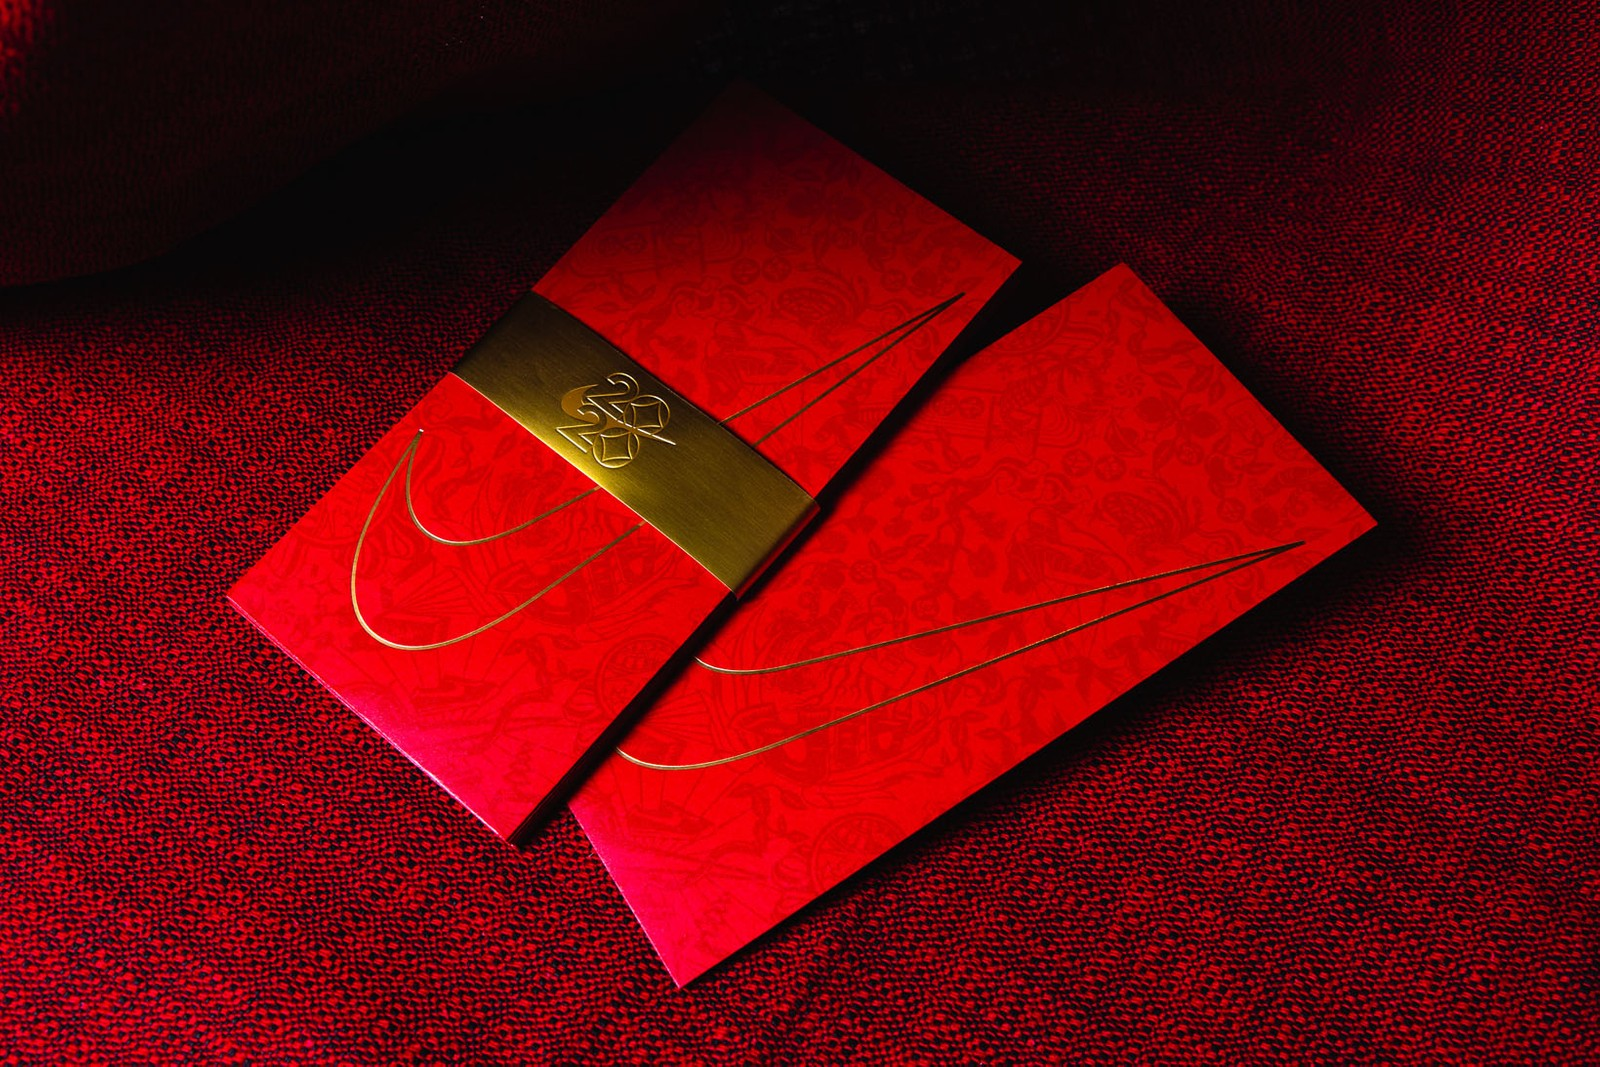 lunar new year red pockets envelopes hong bao lai see louis vuitton celine gucci